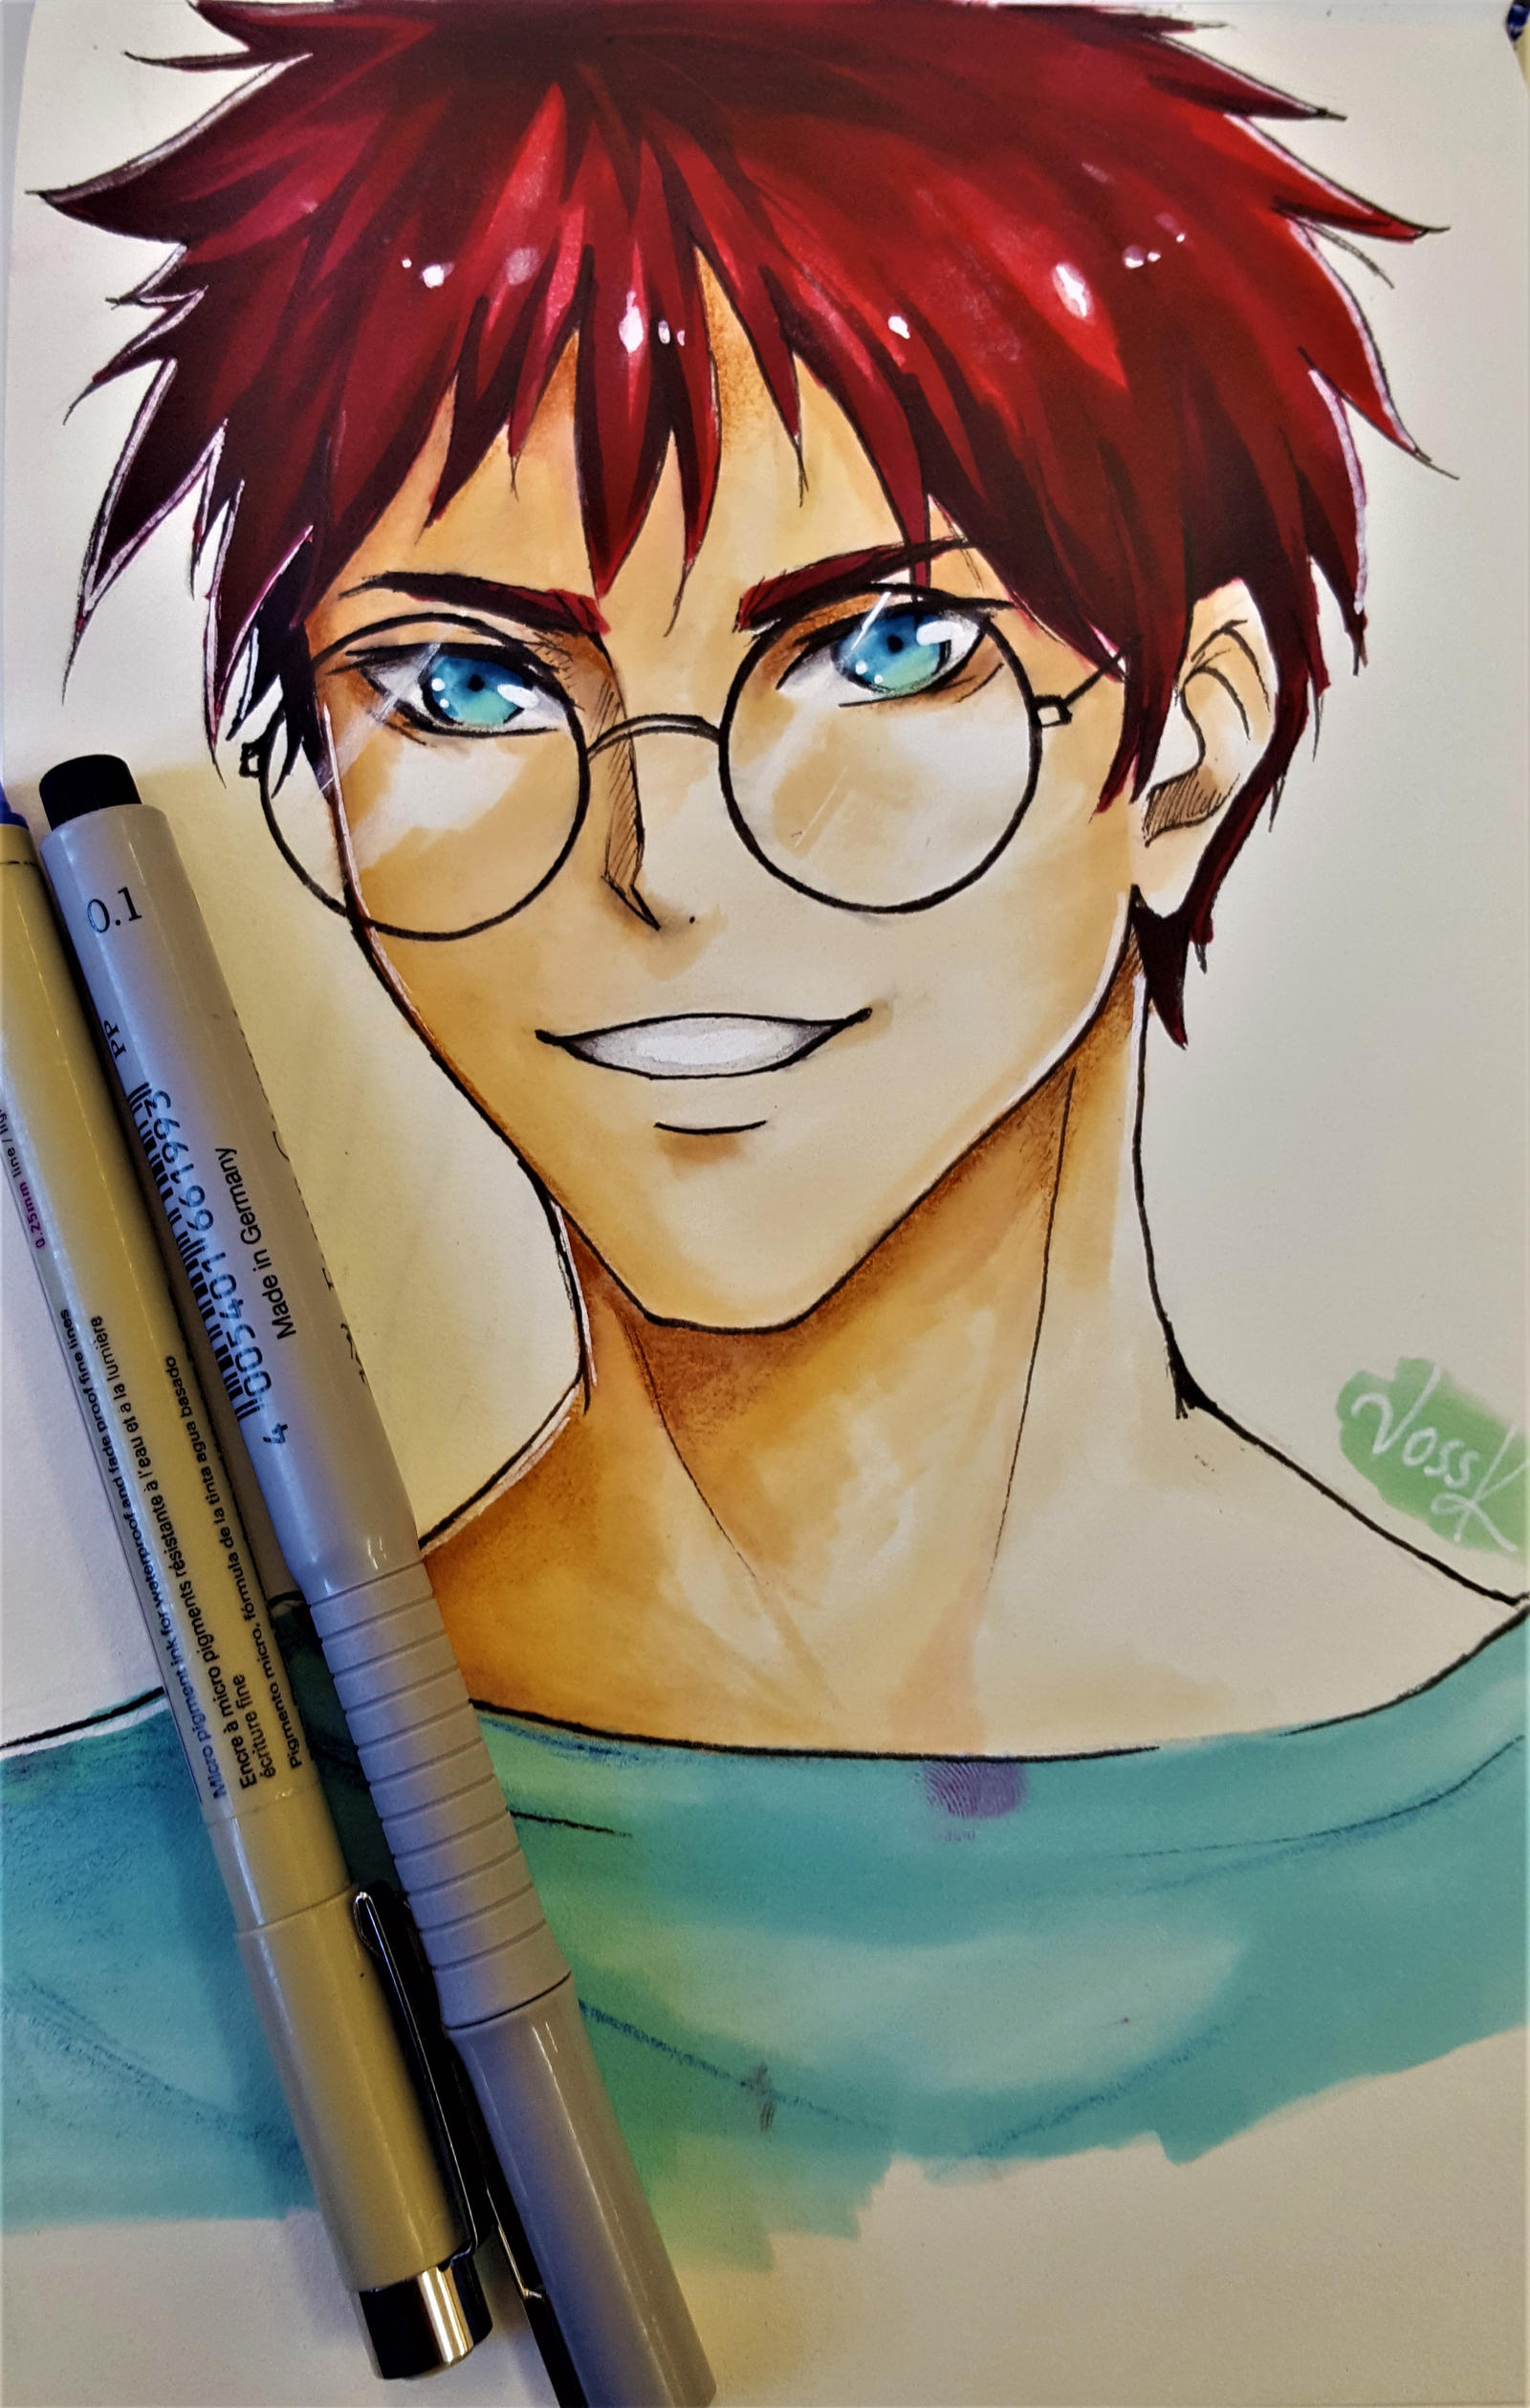 Anime Male Character With Glasses By Voss K Art On Deviantart